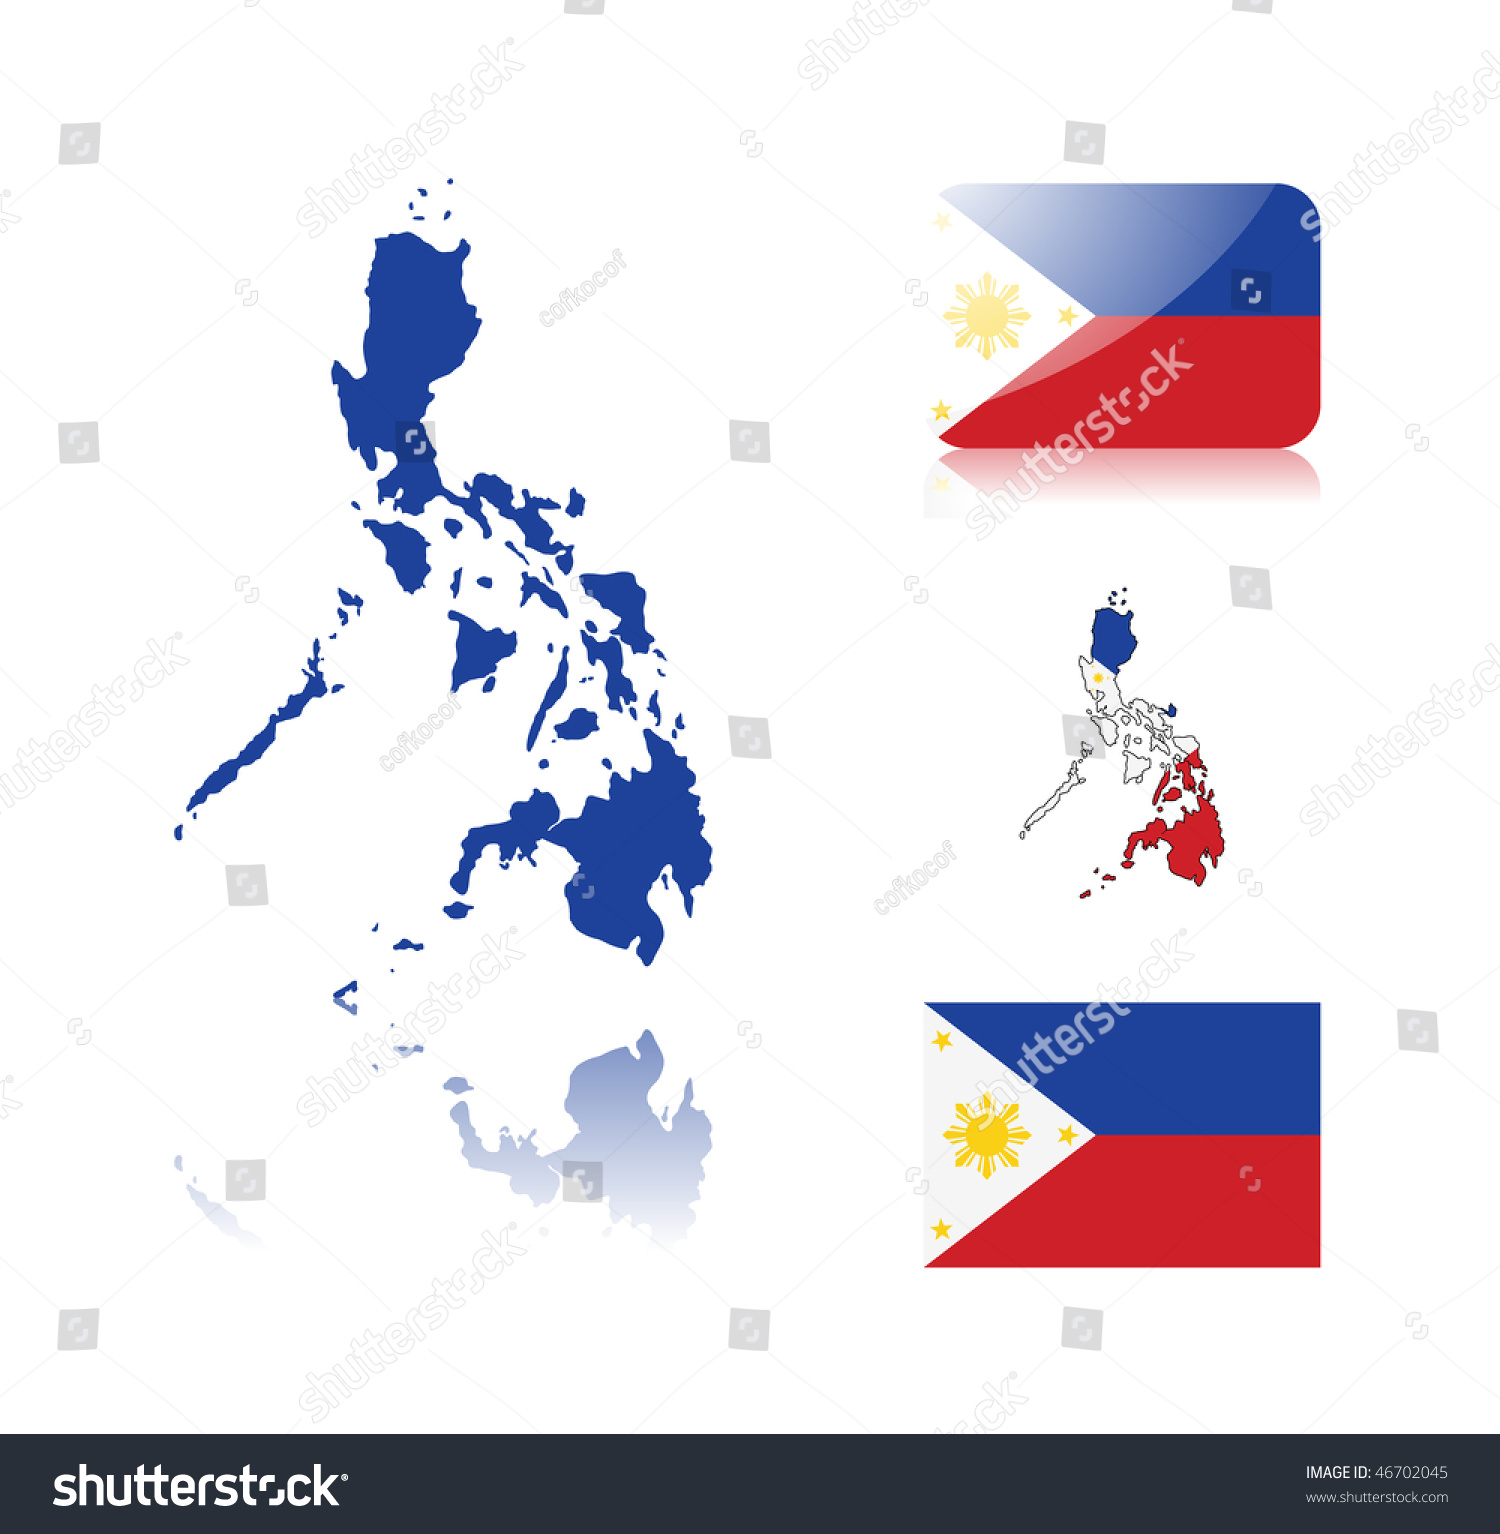 reflection on political map philippines Do the citizens understand the importance of elections and maintaining election integrity do the political  philippines, it is illegal to buy  a reflection of.